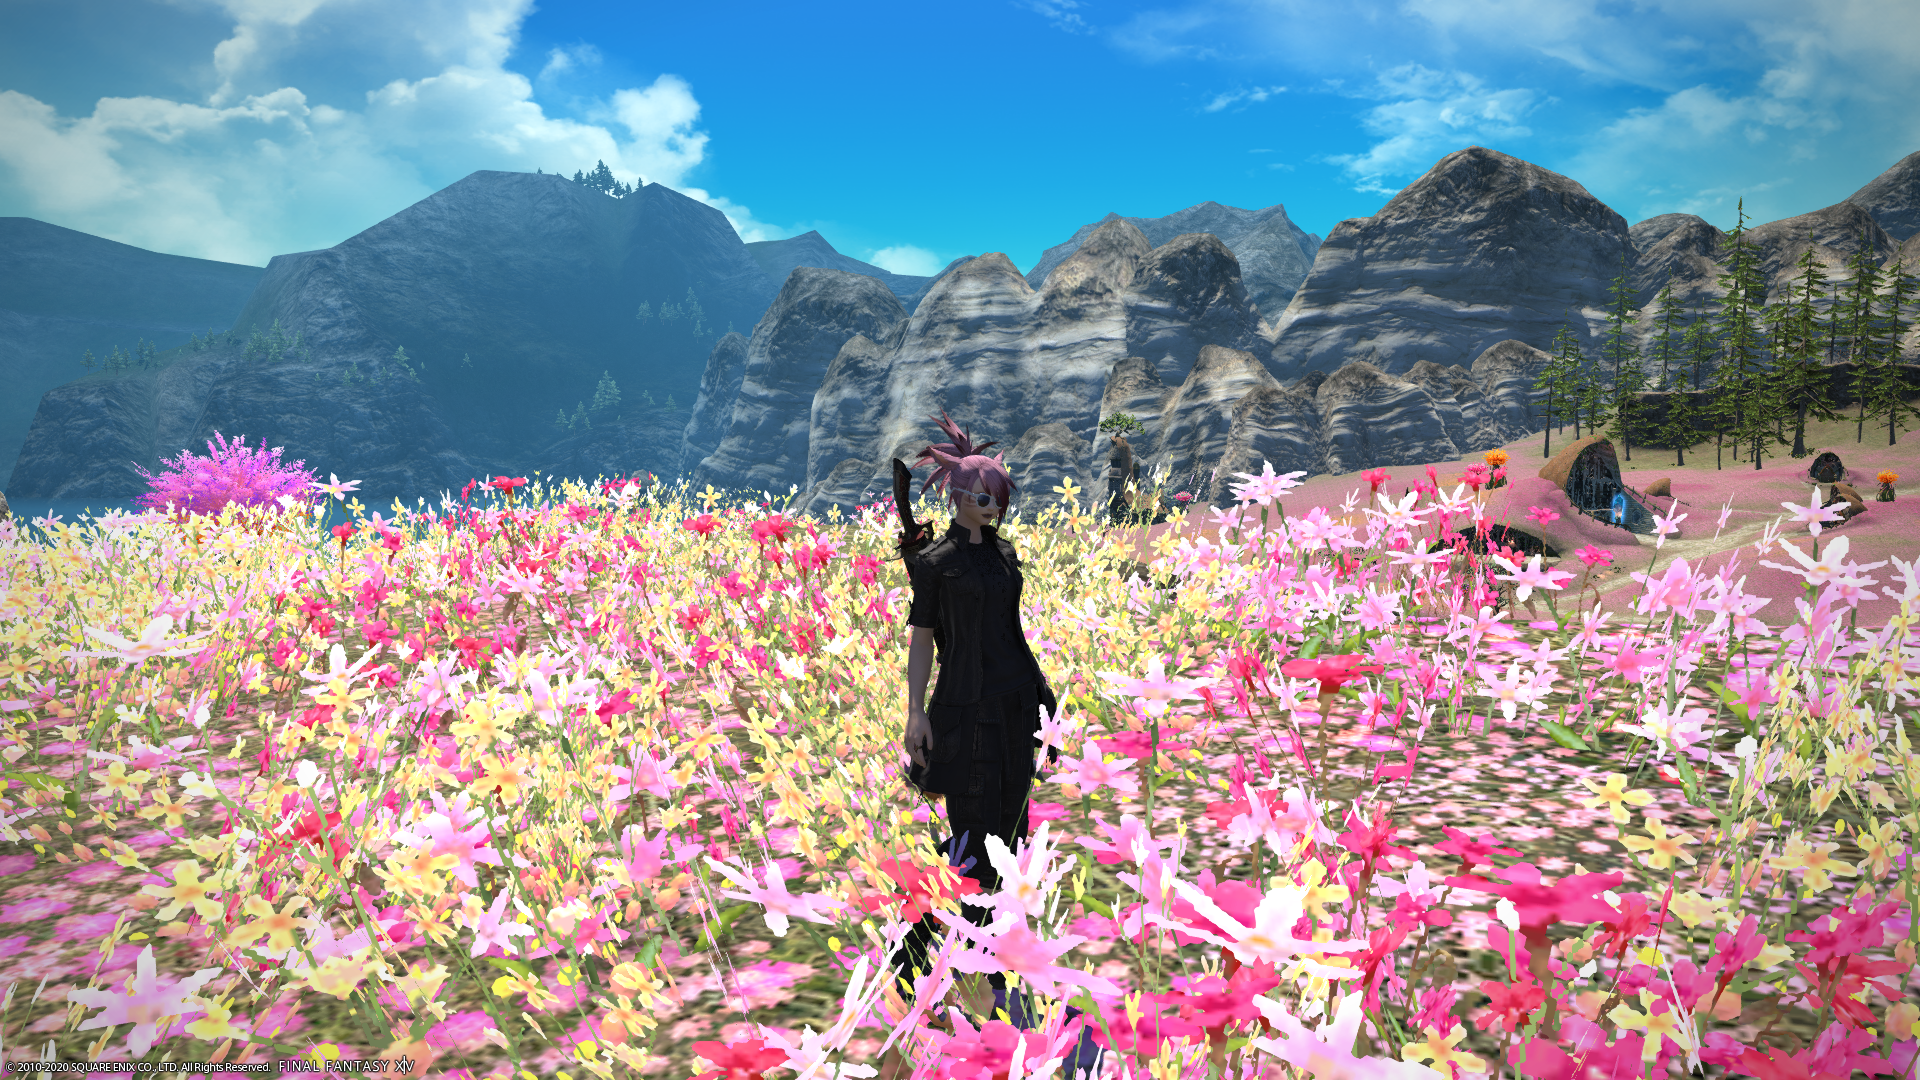 Character in field of flowers